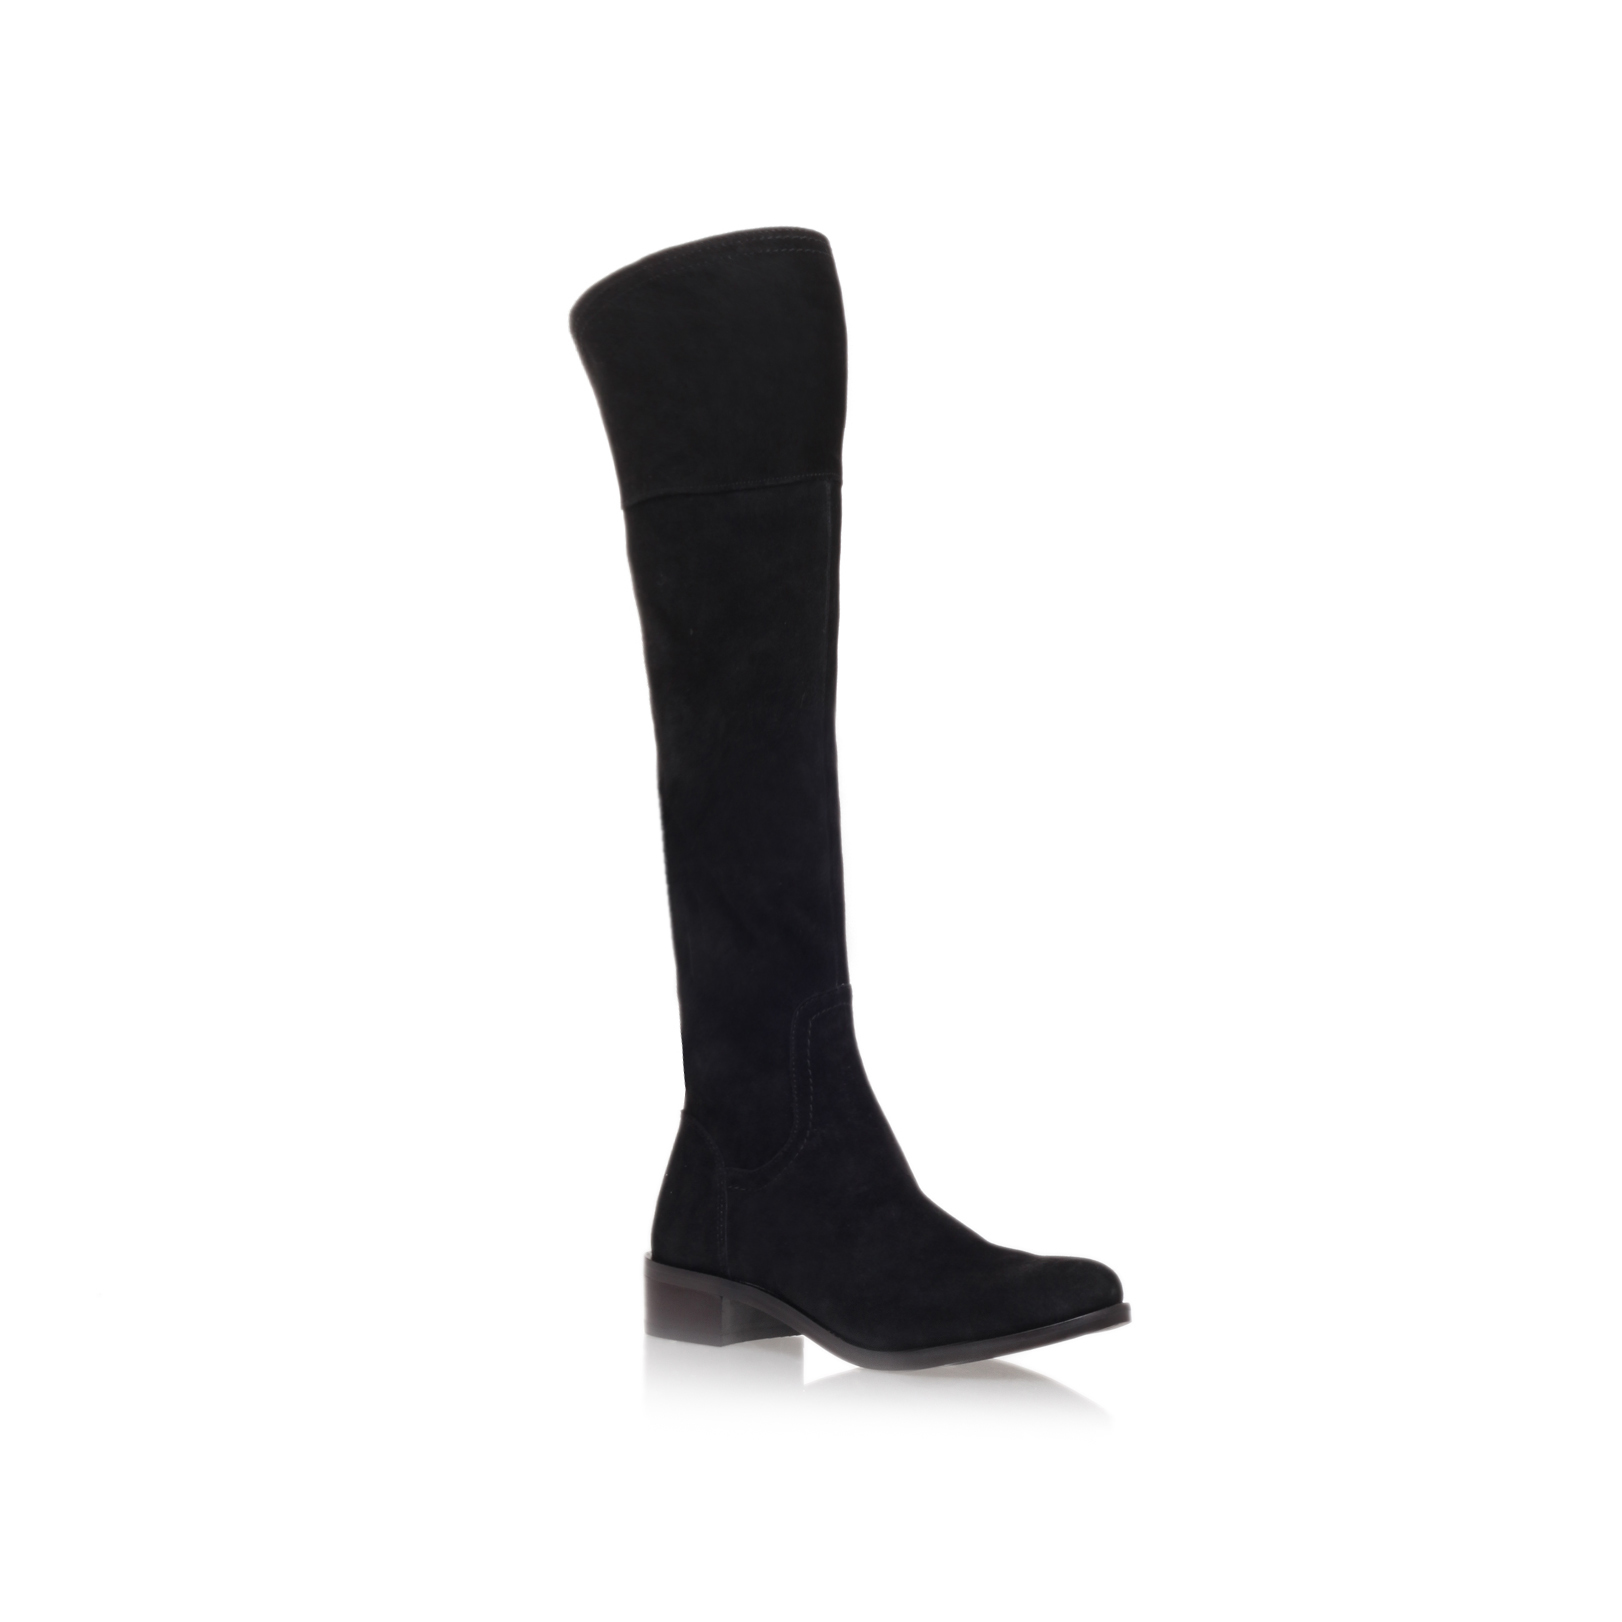 e953bd61765e8c Vince Camuto   VATERO Black Knee High Boots by VINCE CAMUTO